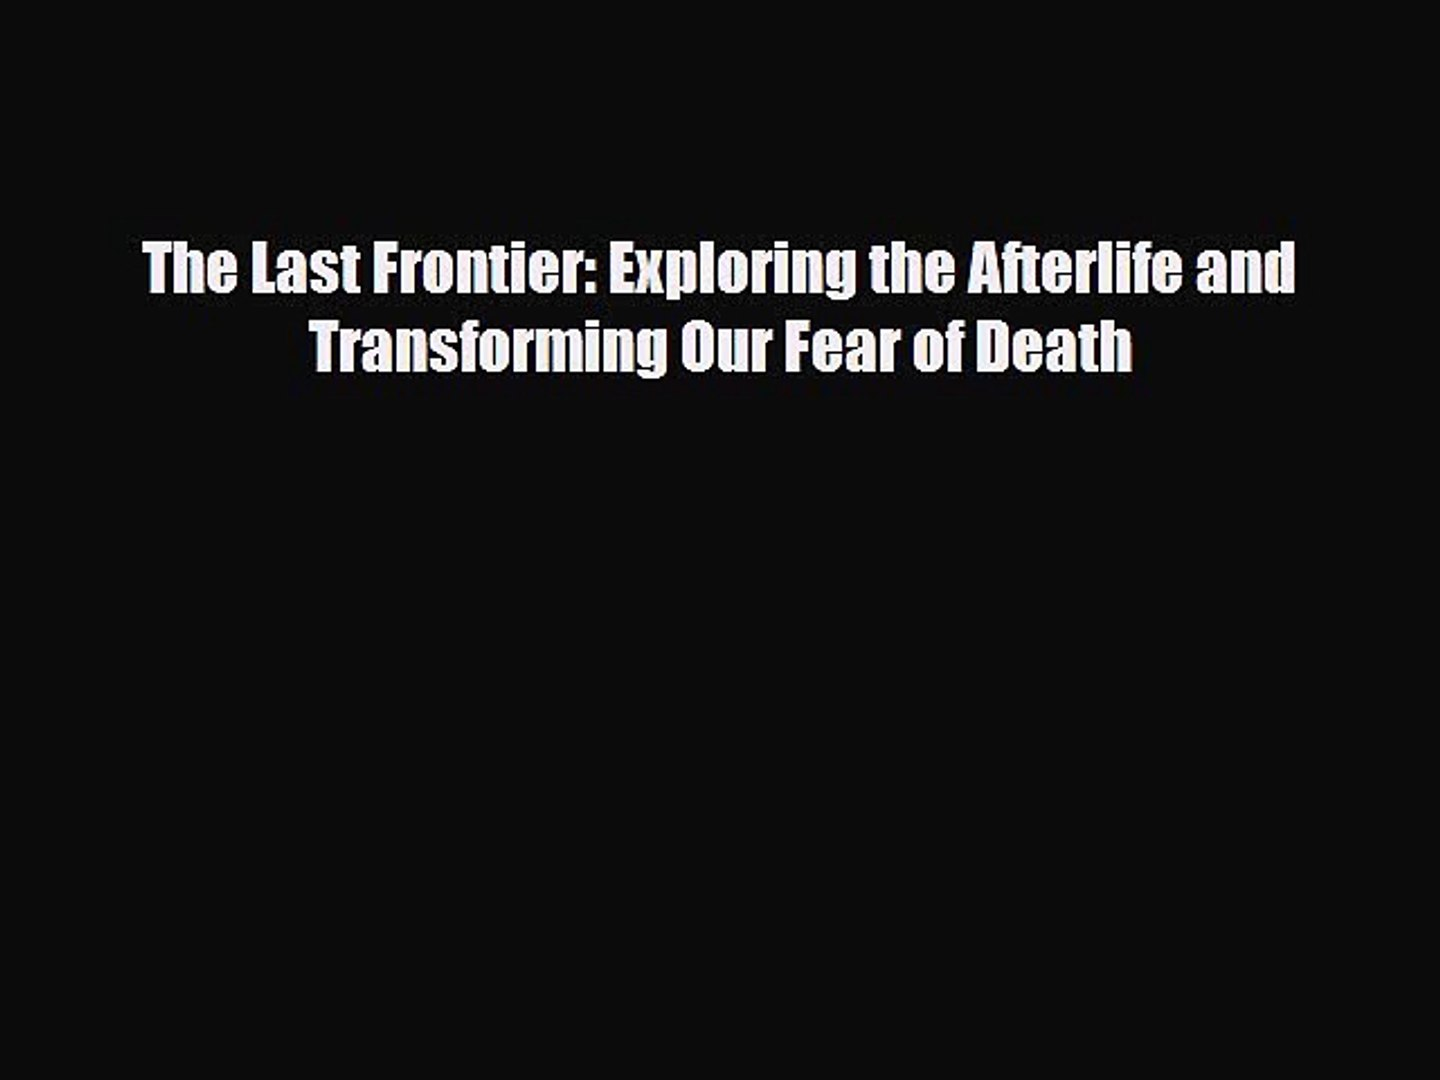 Some videos to help overcome the fear of death: